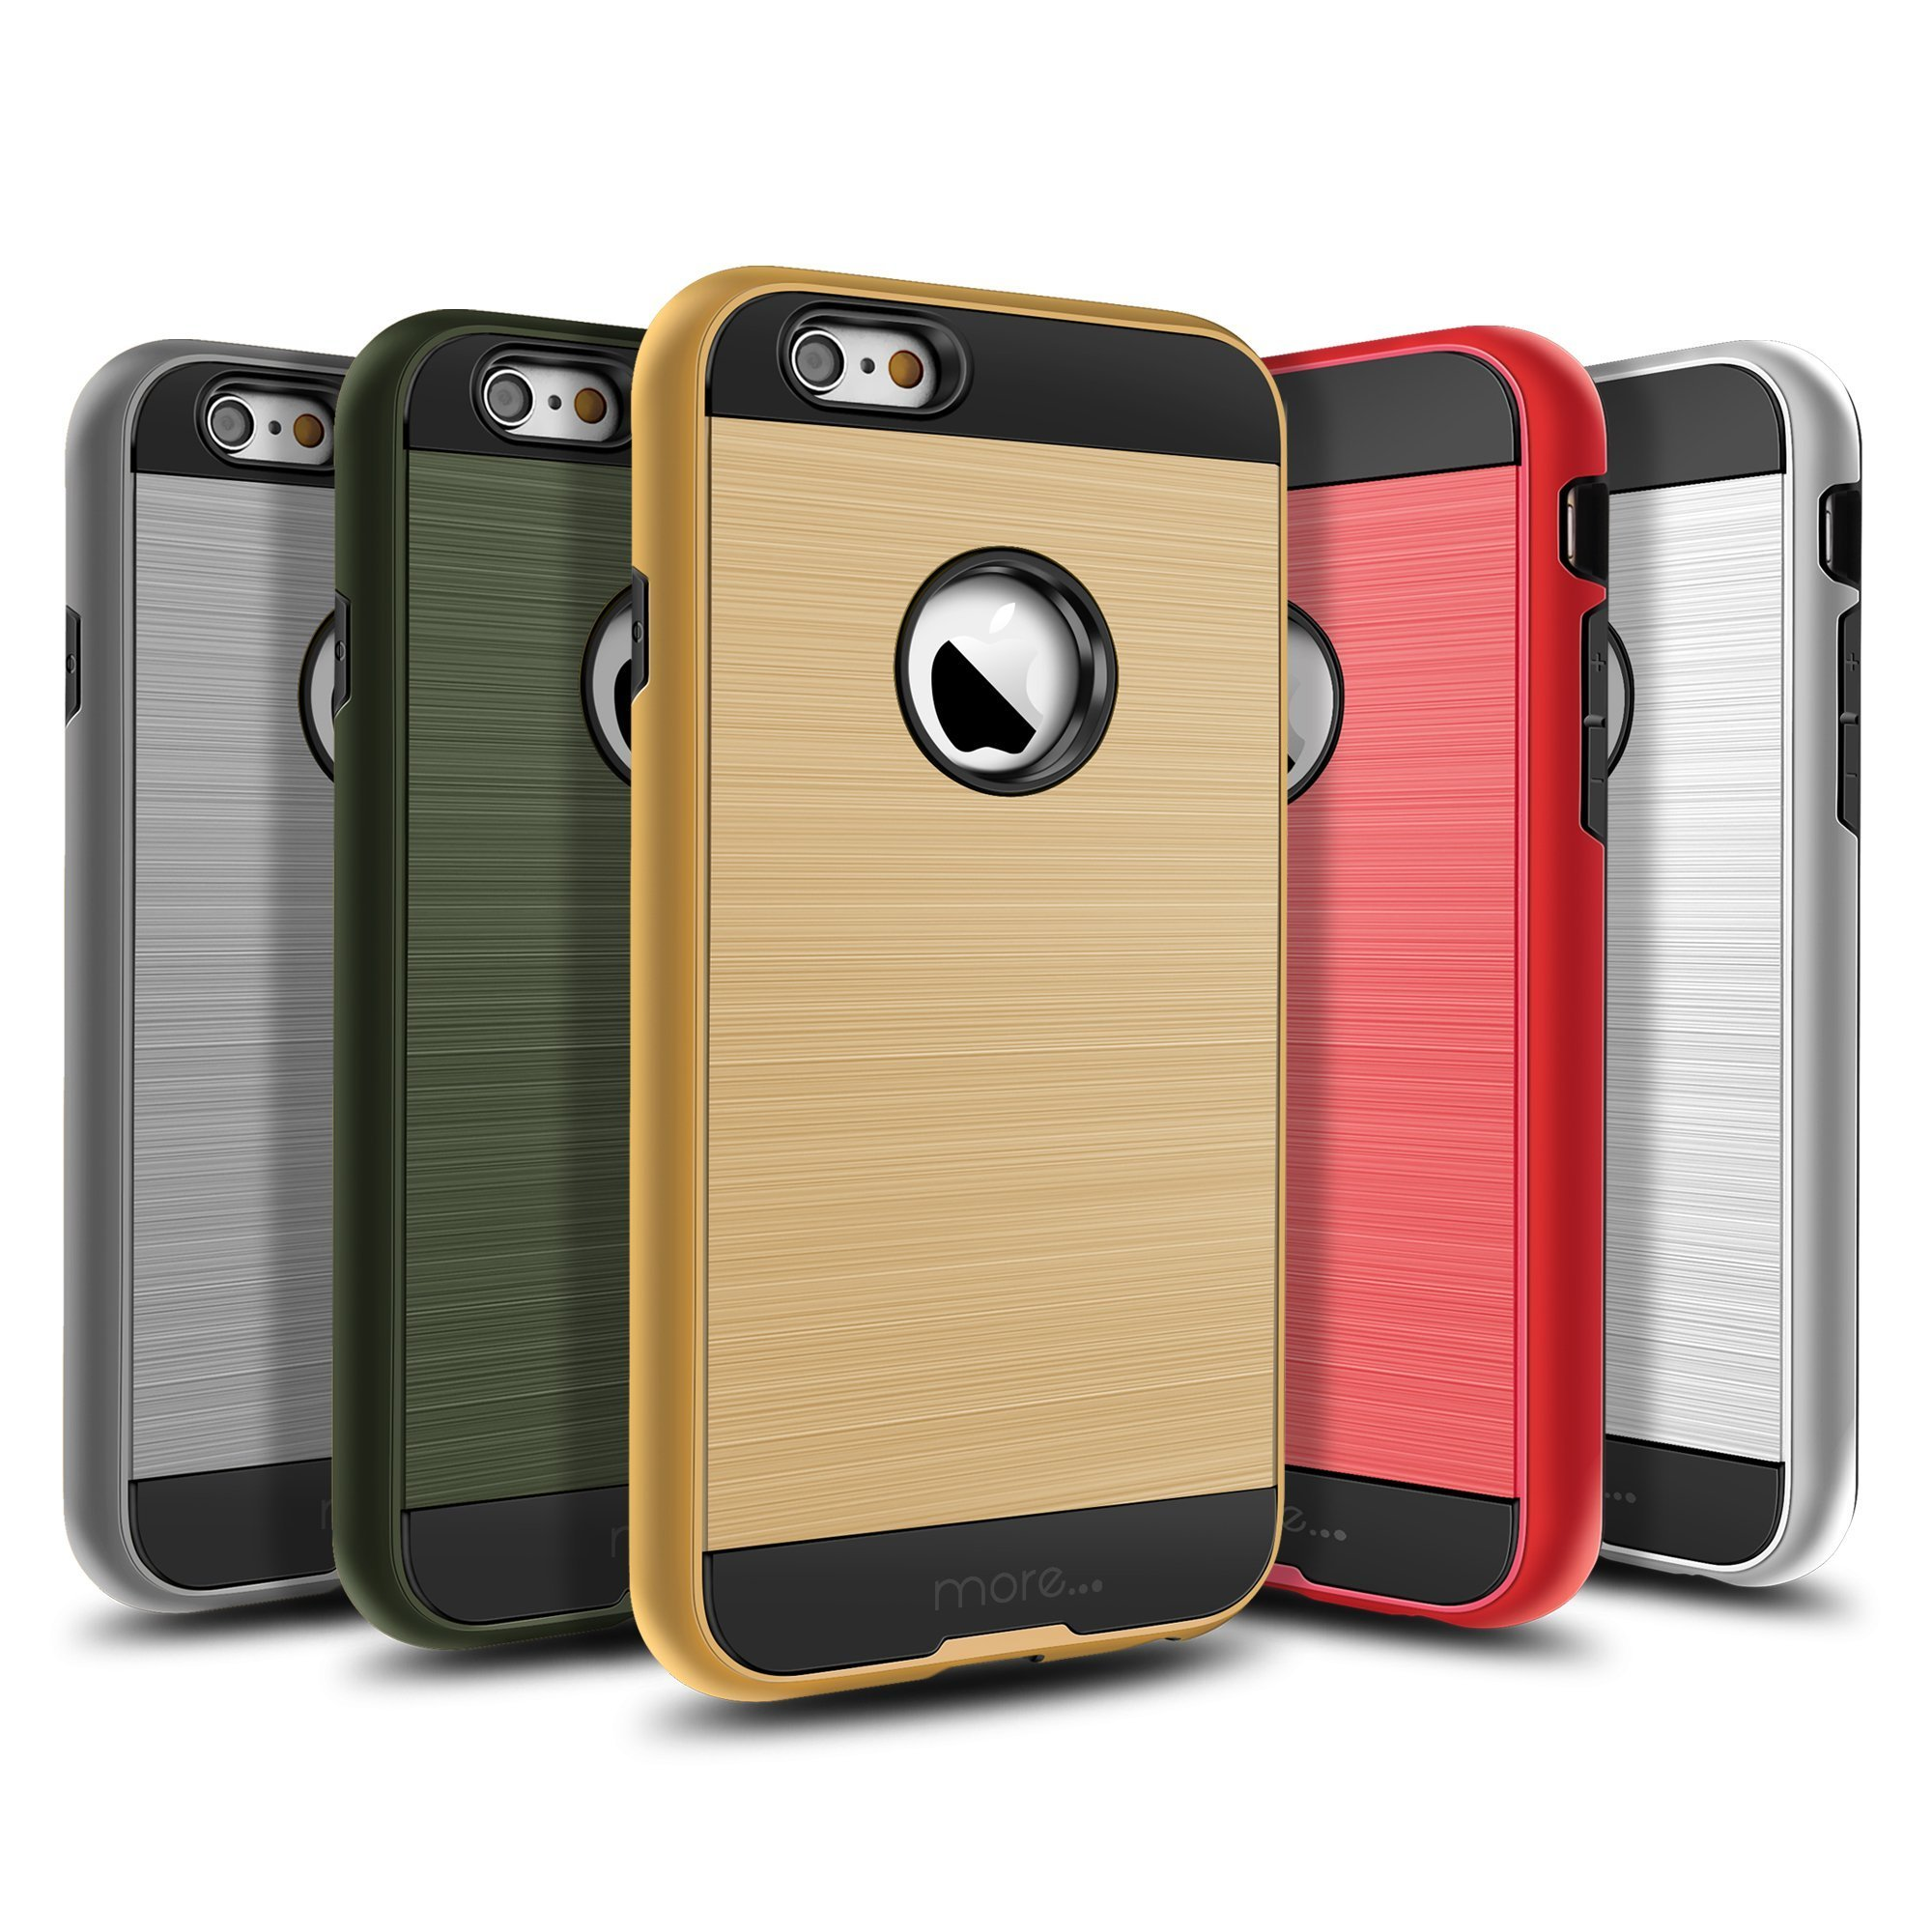 Top 5 Best iPhone 6S Cases in 2016 from More Case